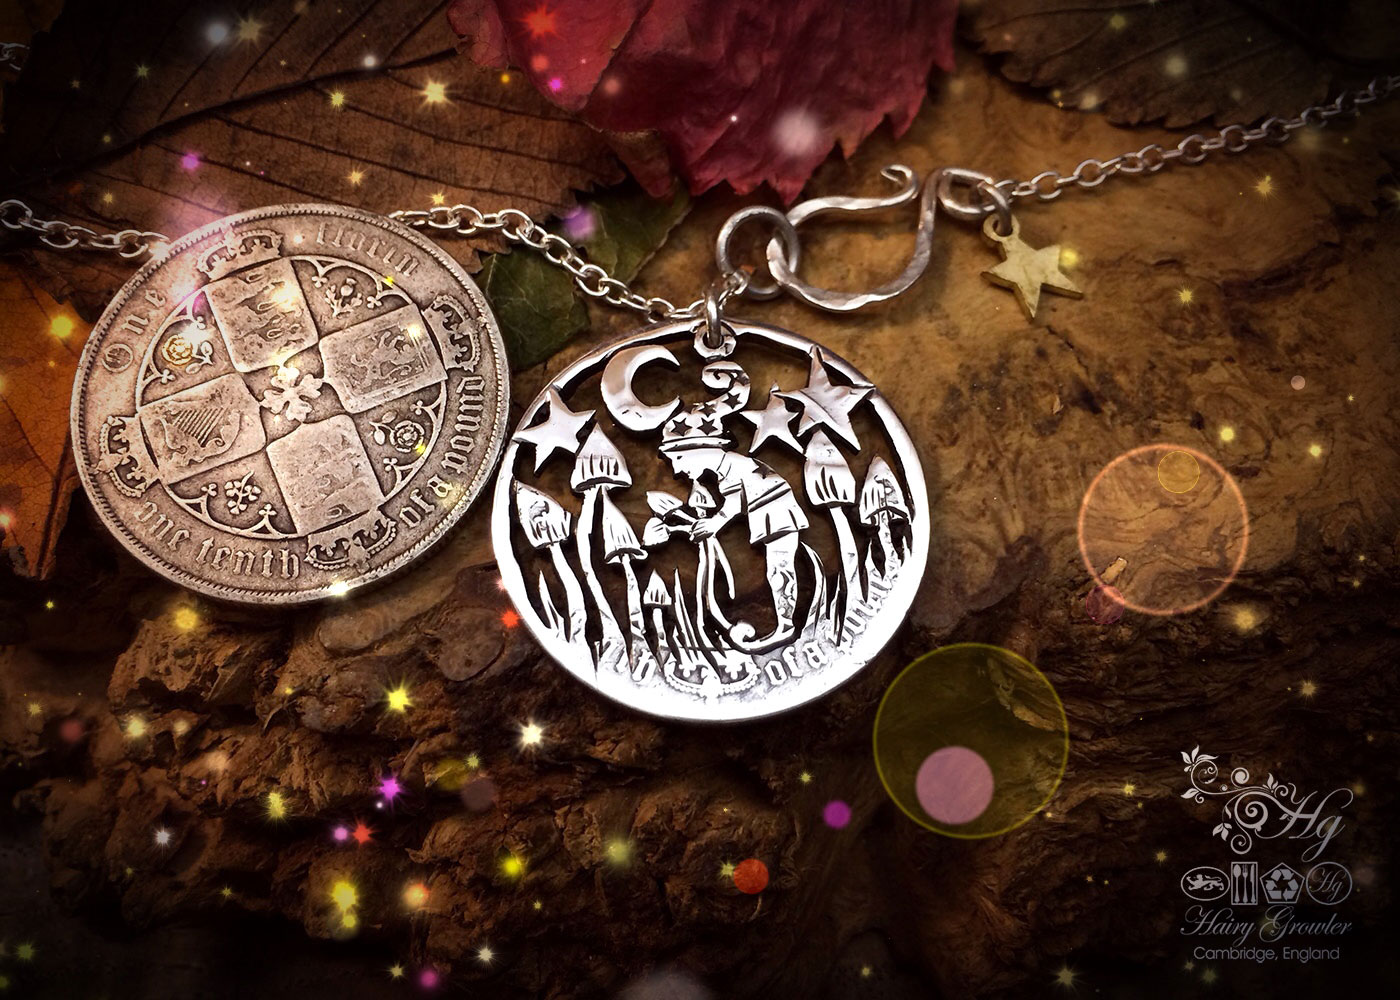 Hand made and up-cycled pixie and magic mushrooms coin pendant necklace